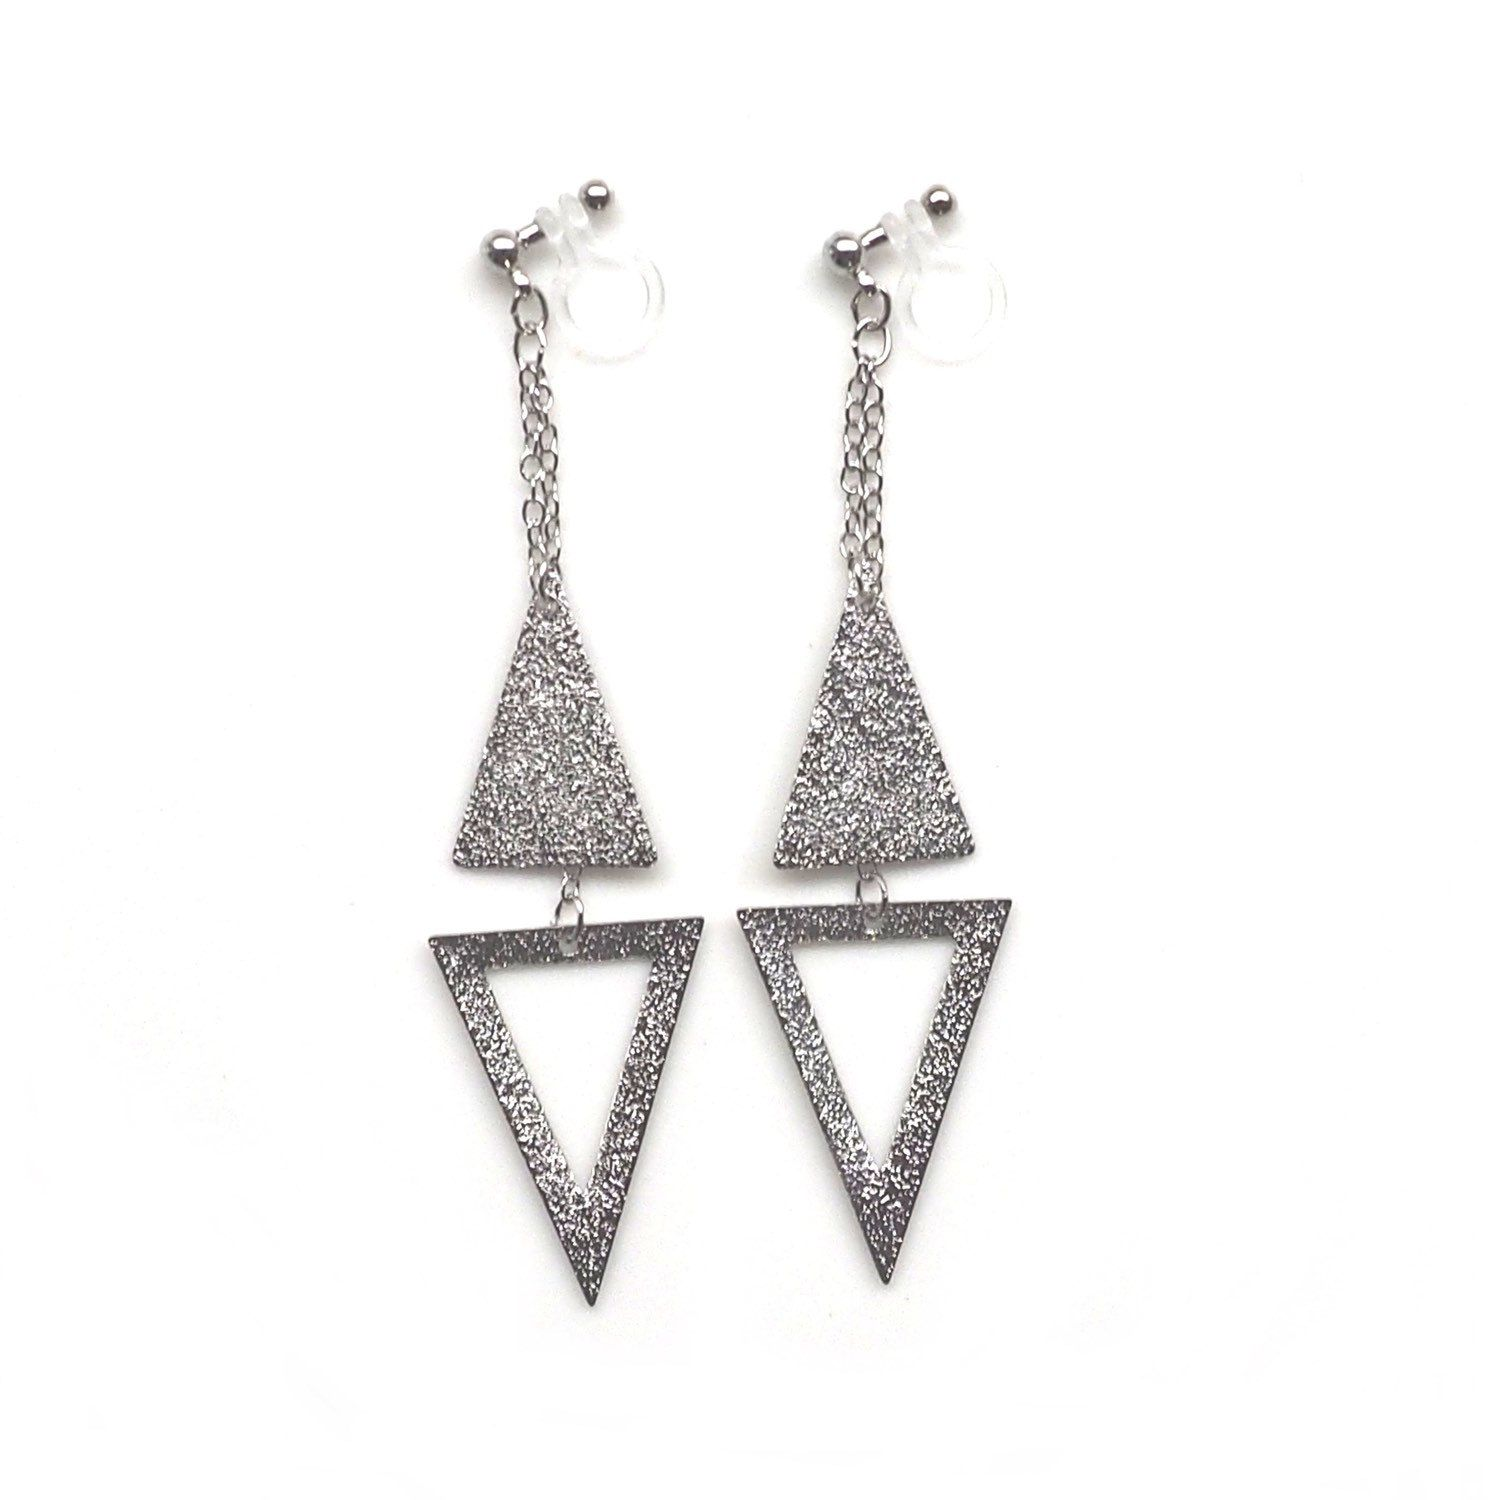 Metallic Silver Triangle Invisible Clip On Earrings, Dangle Geometric Clip  Earrings, Non Pierced Earrings, Minimalist Clipons, Gift For Her